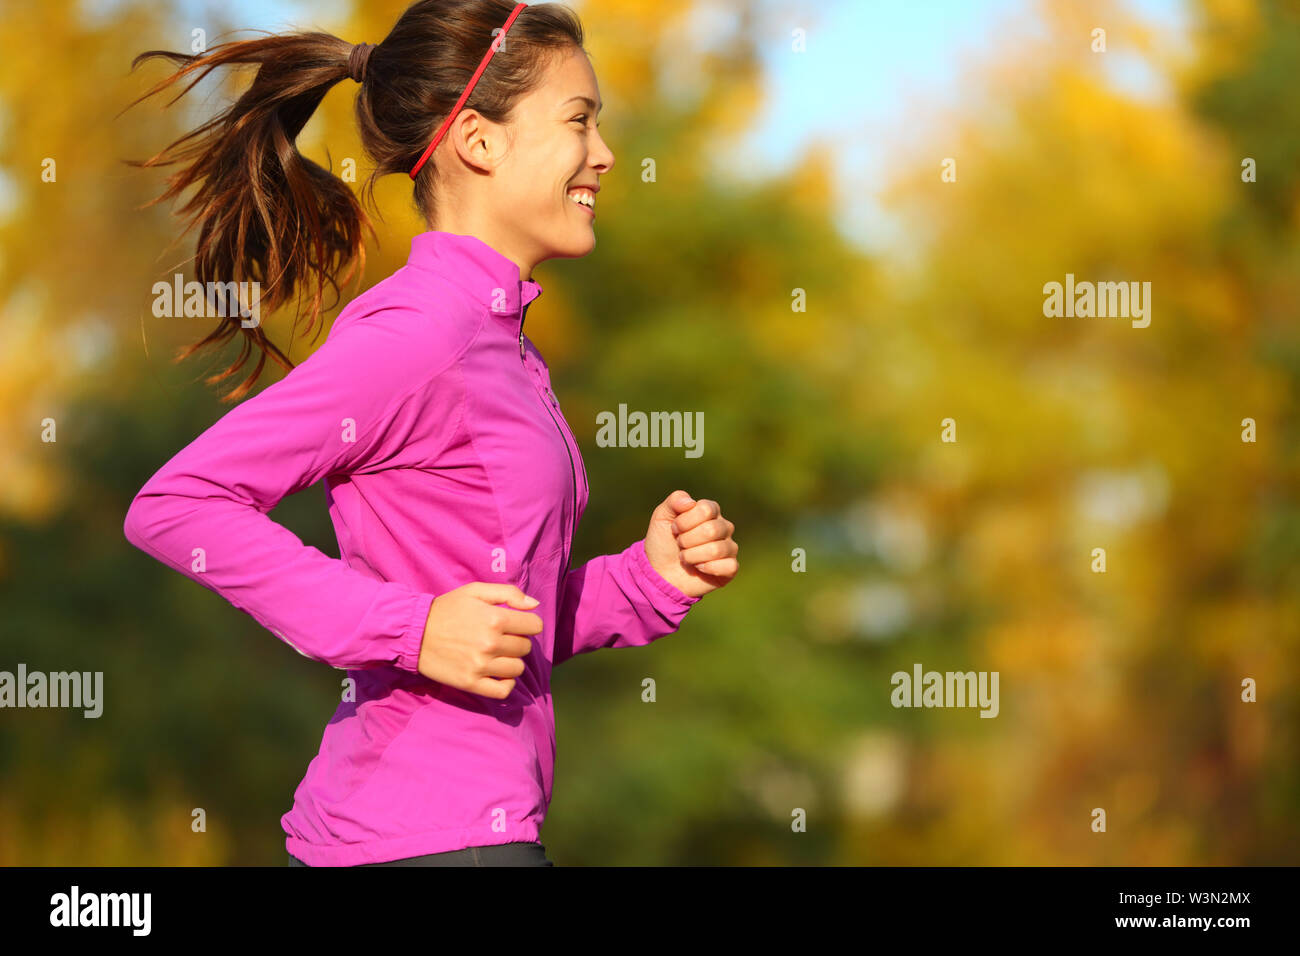 Woman running in autumn fall forest. Female runner training outdoor in profile. Healthy lifestyle image of young Asian woman jogging outside. Fit ethnic Asian Caucasian fitness model. - Stock Image